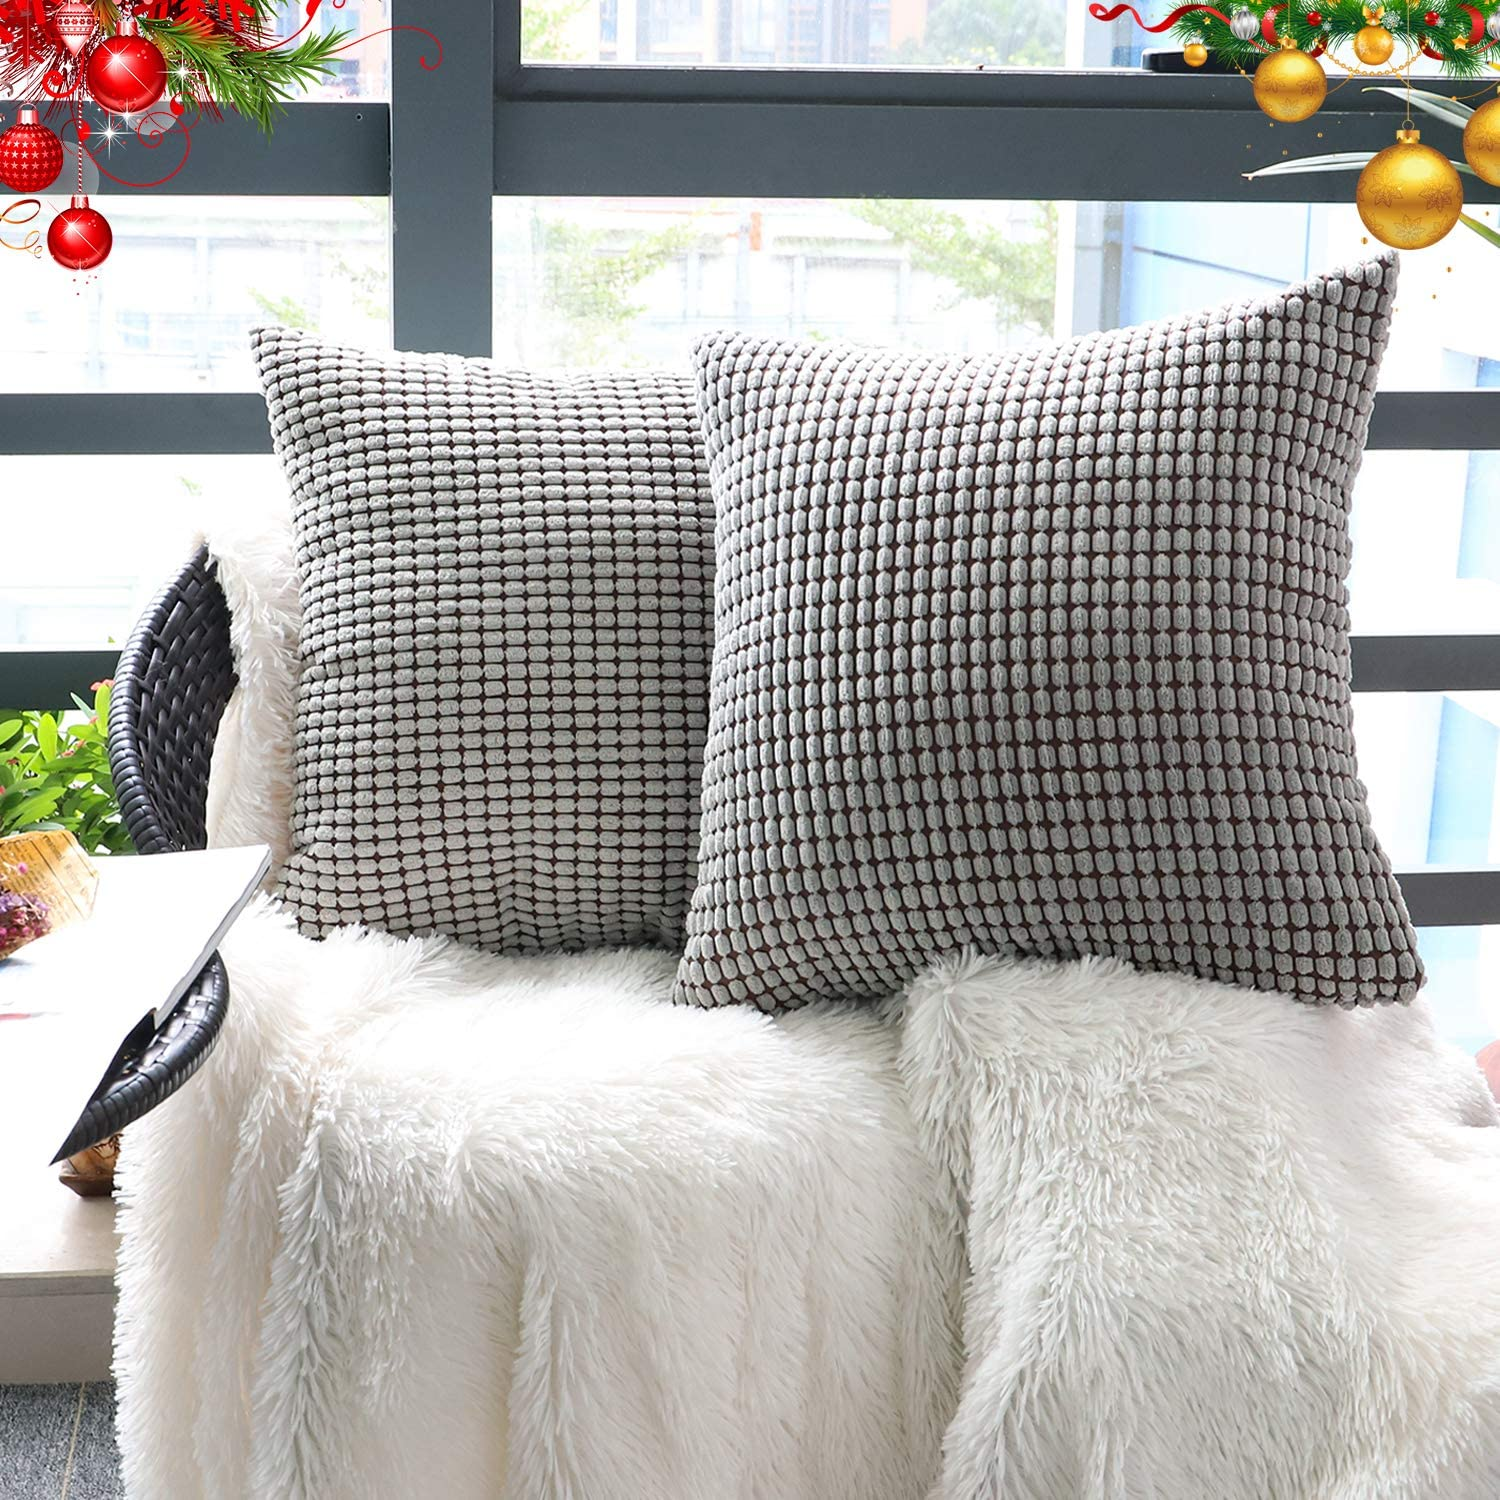 Set of 2,Decorative Throw Pillow Covers 16